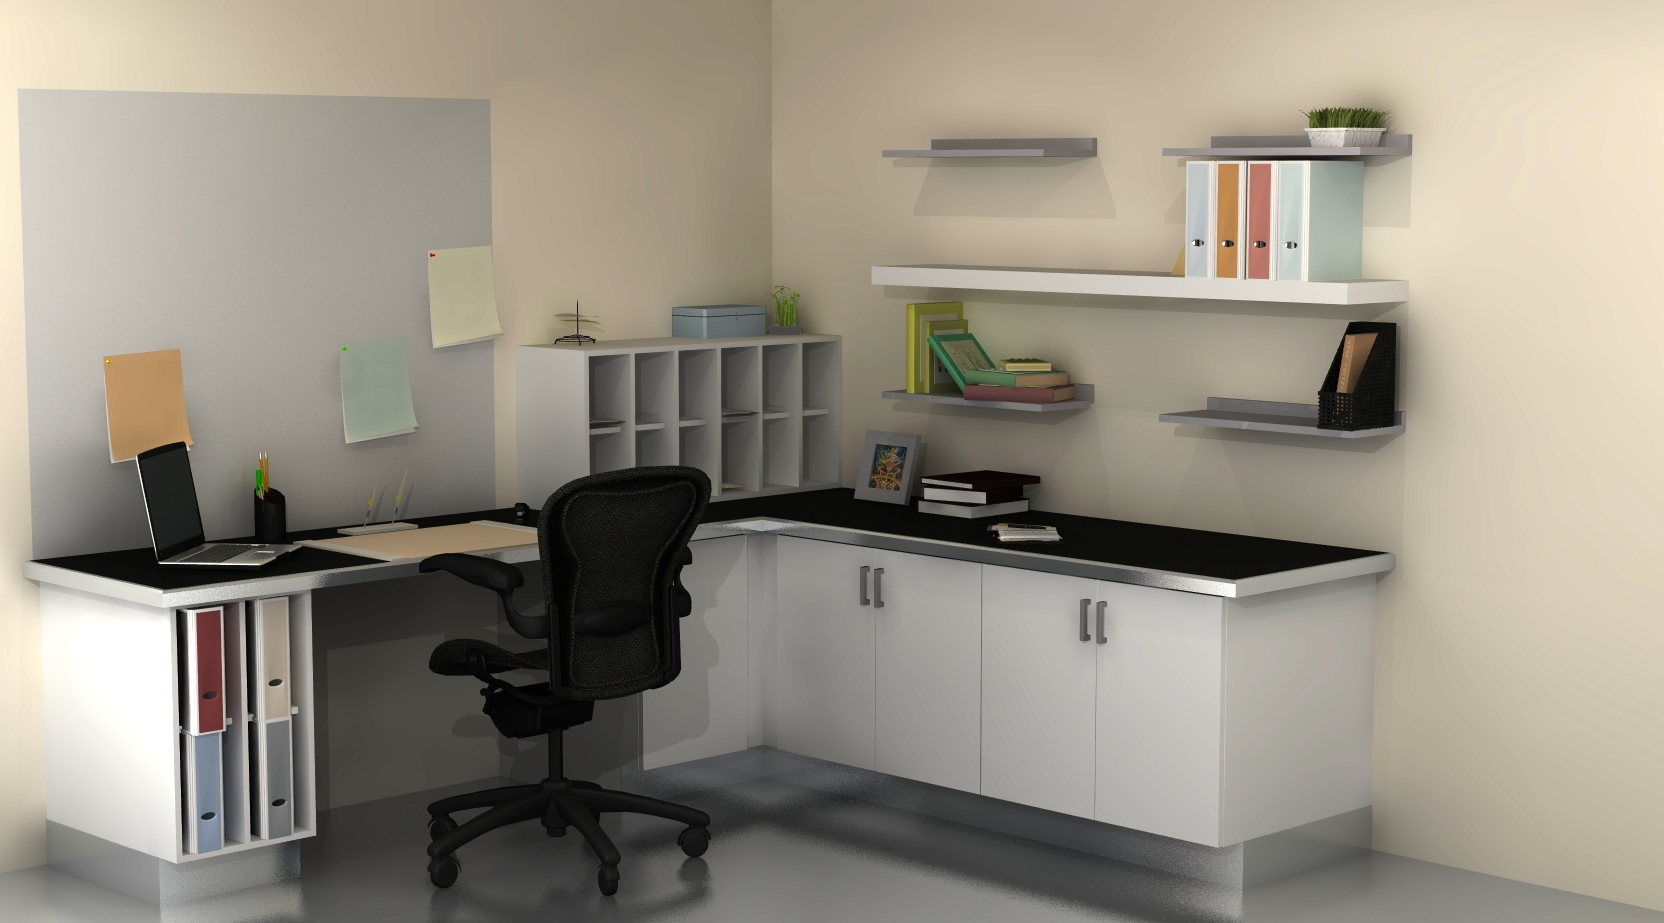 Useful spaces a home office with ikea cabinets for Ikea office ideas